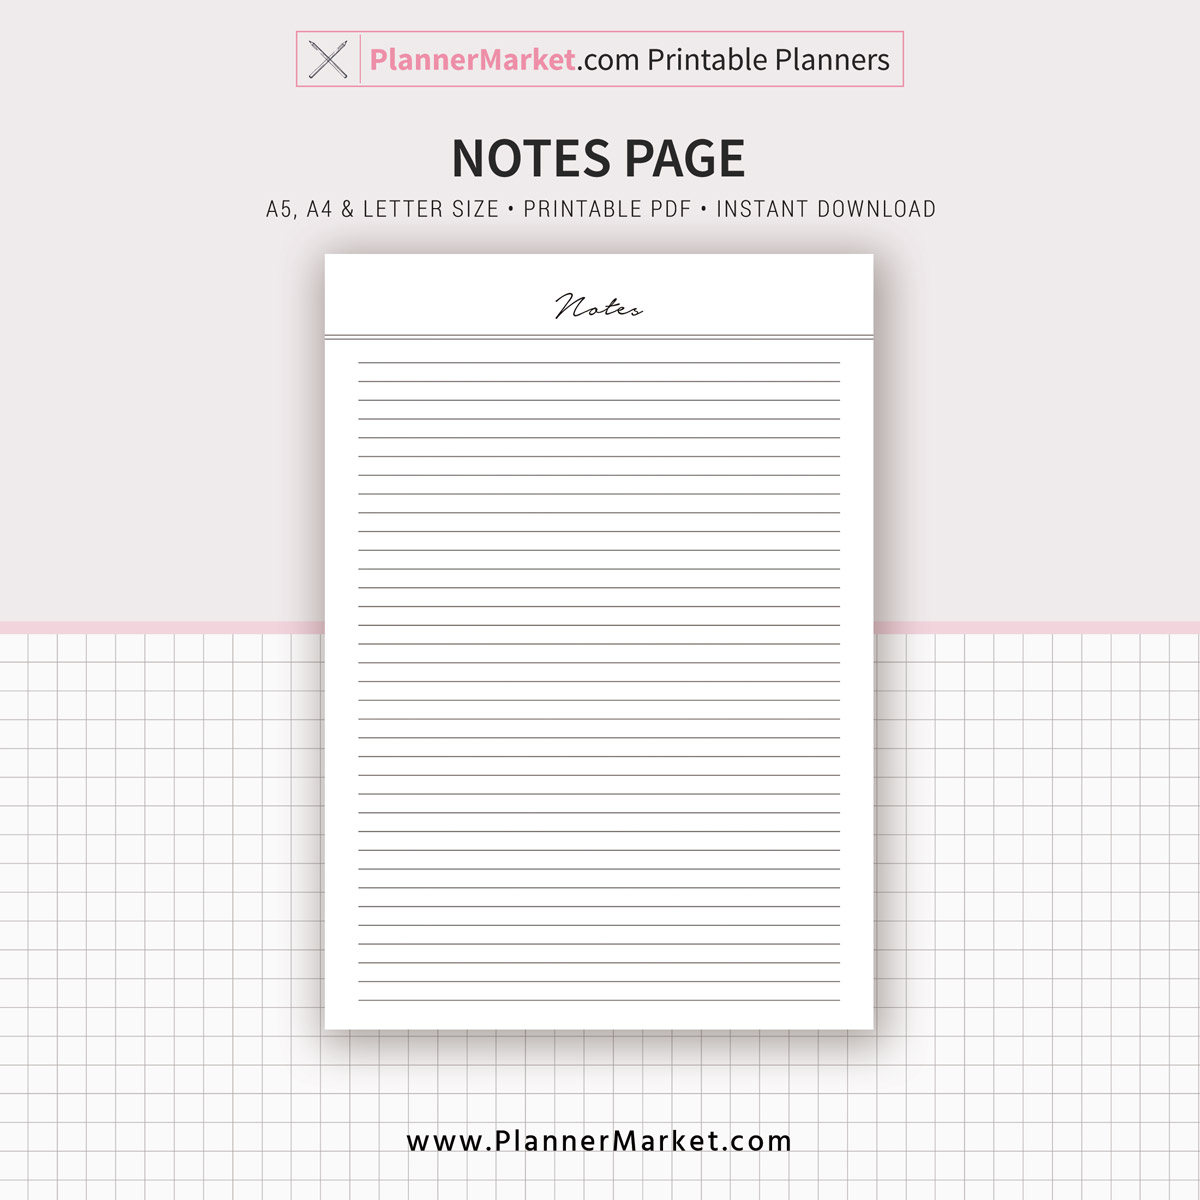 photo relating to Printable Notes referred to as Notes Web site, 2019 Planner, A5, A4, Letter Measurement, Planner Refill, Planner Binder, Printable Planner, Instantaneous Obtain